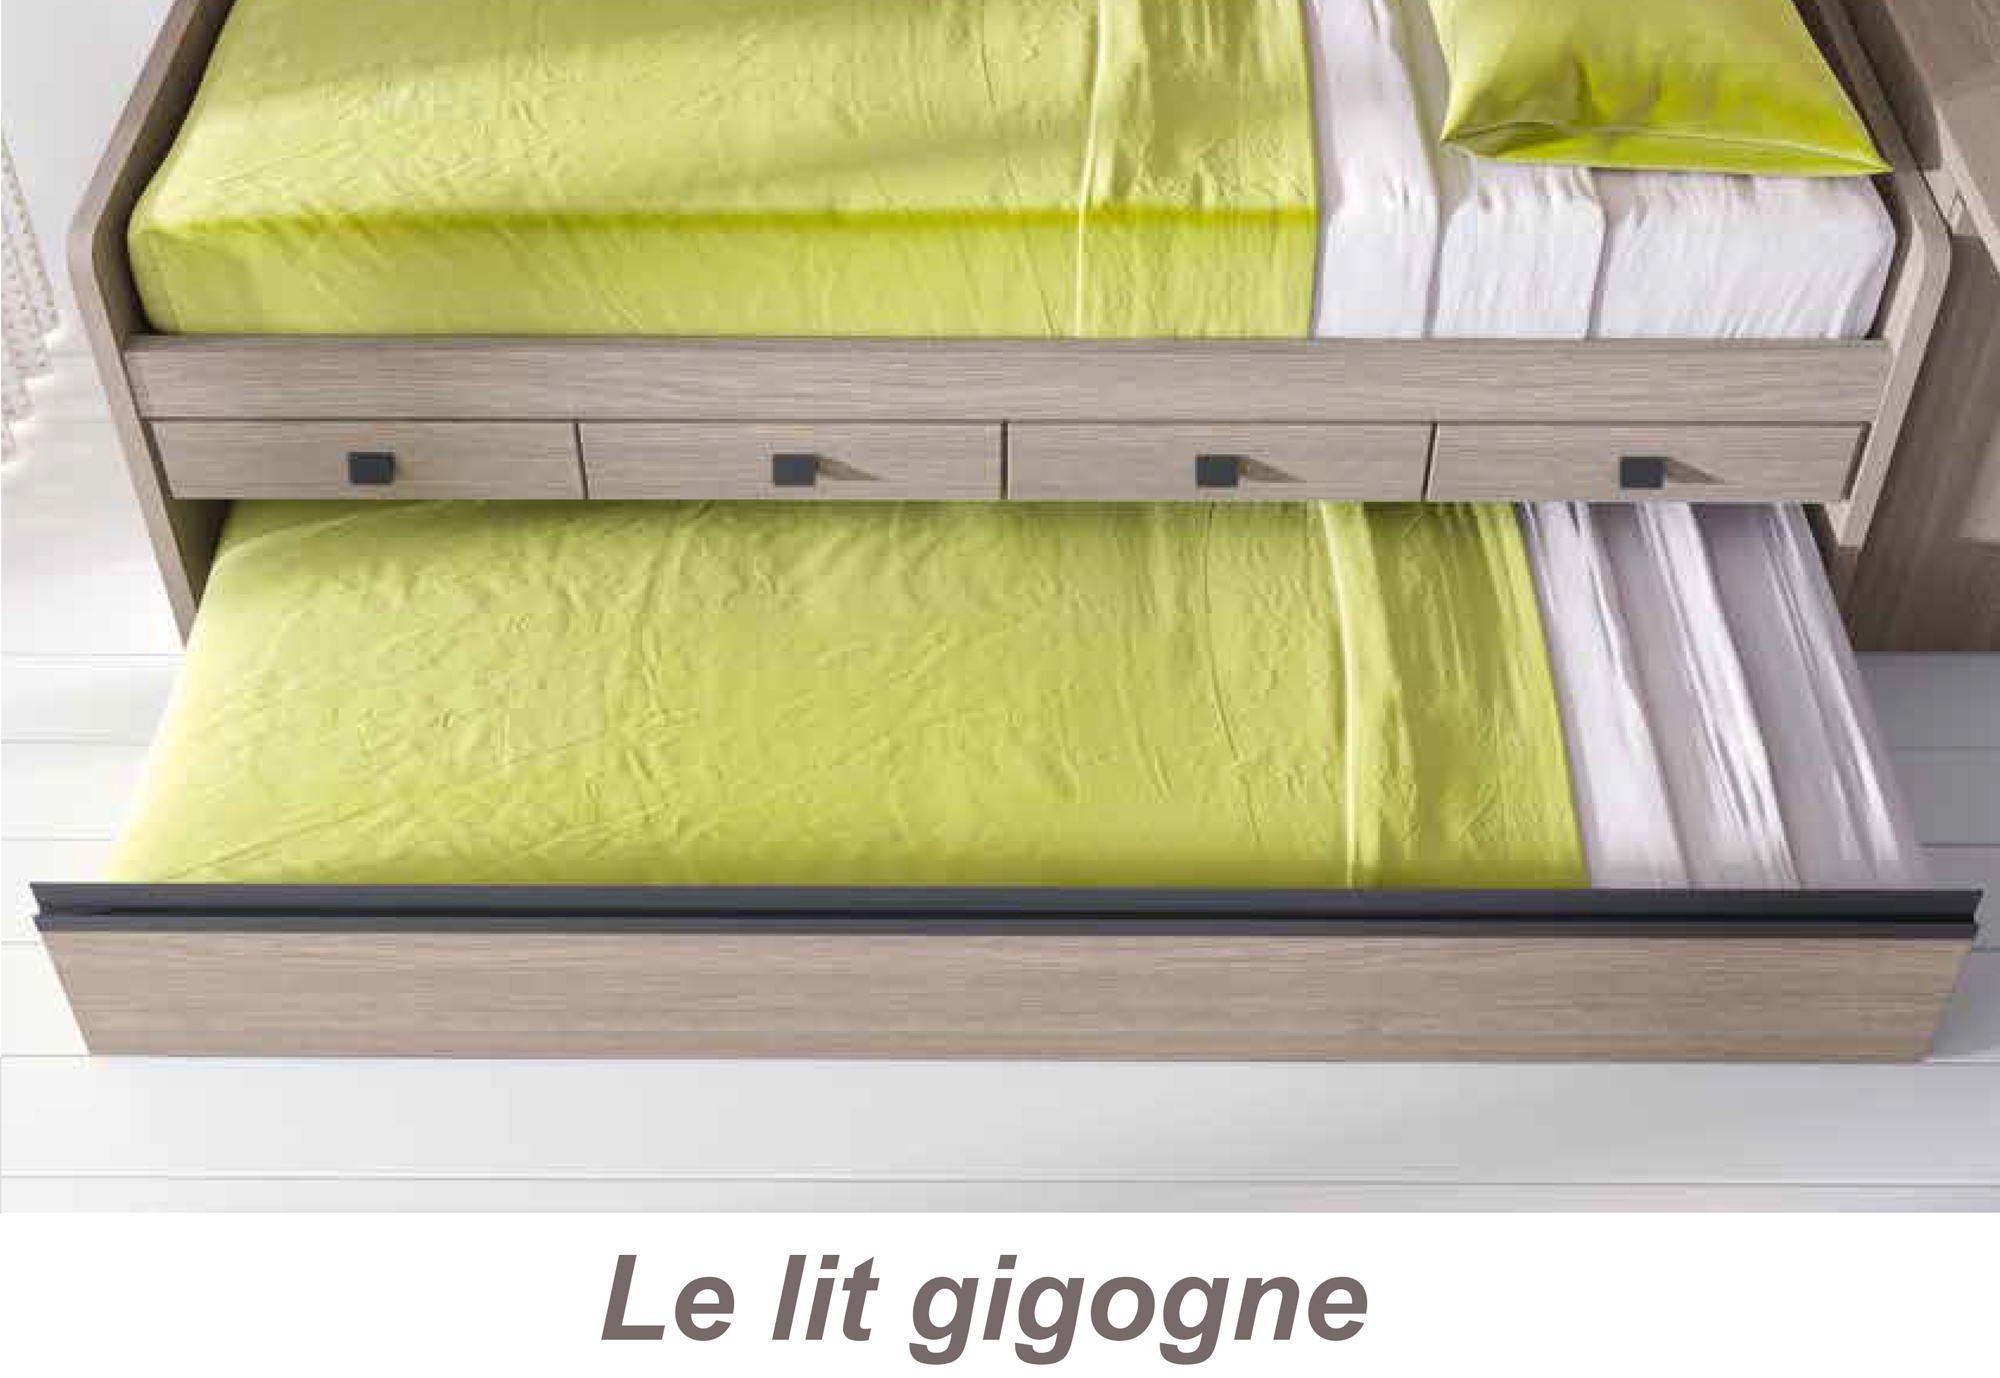 chambre ado fille avec lit gigogne fun color e glicerio so nuit. Black Bedroom Furniture Sets. Home Design Ideas